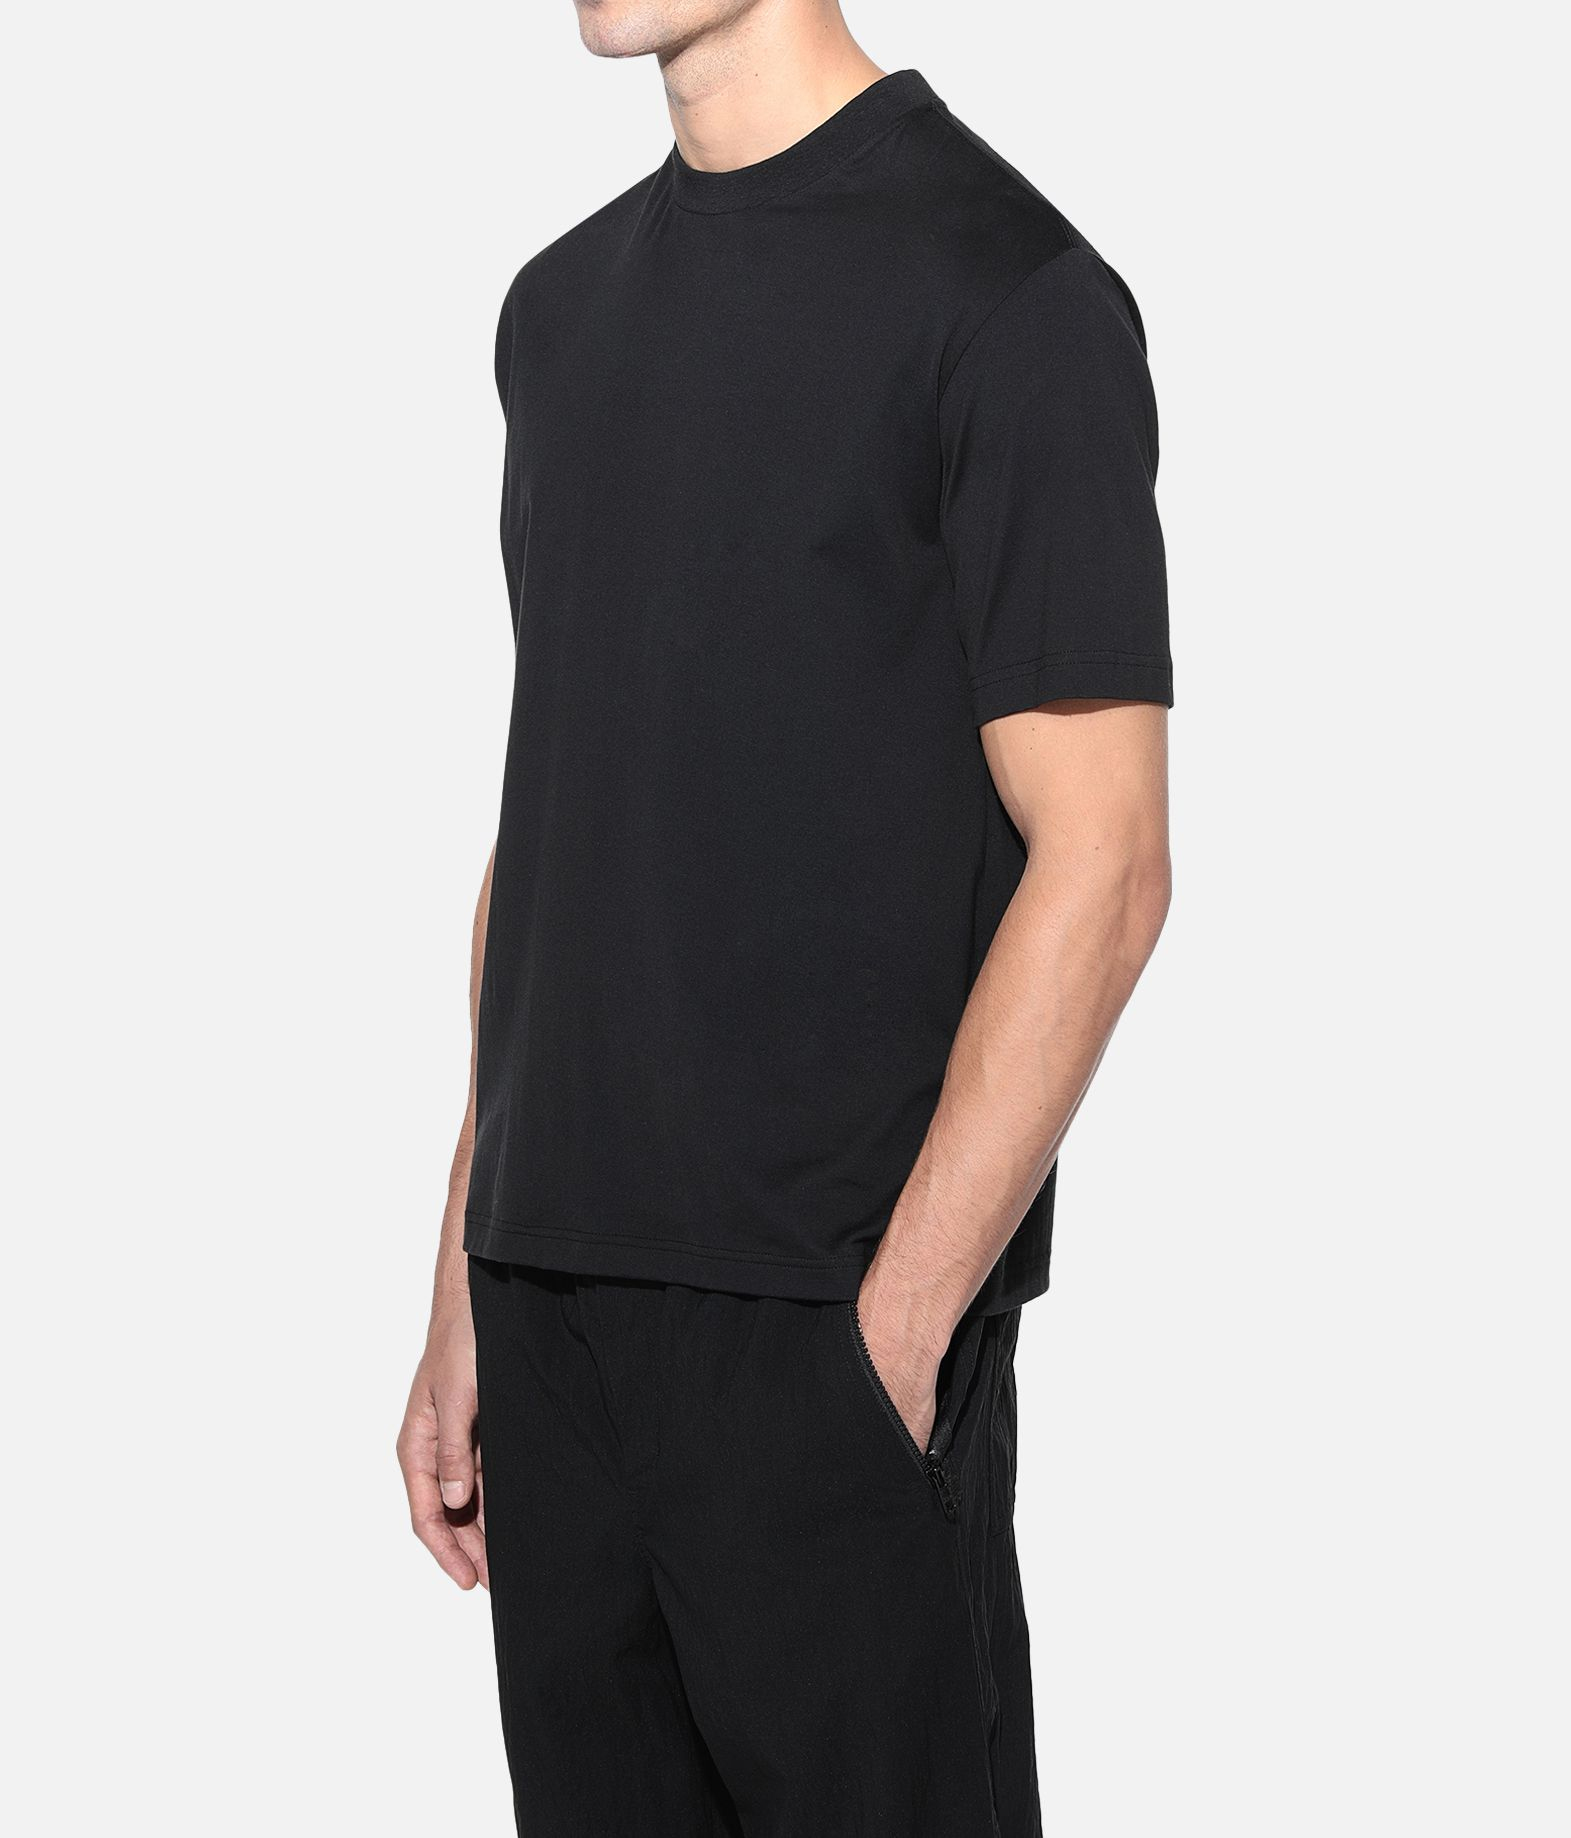 Y-3 Y-3 Signature Graphic Tee T シャツ メンズ e